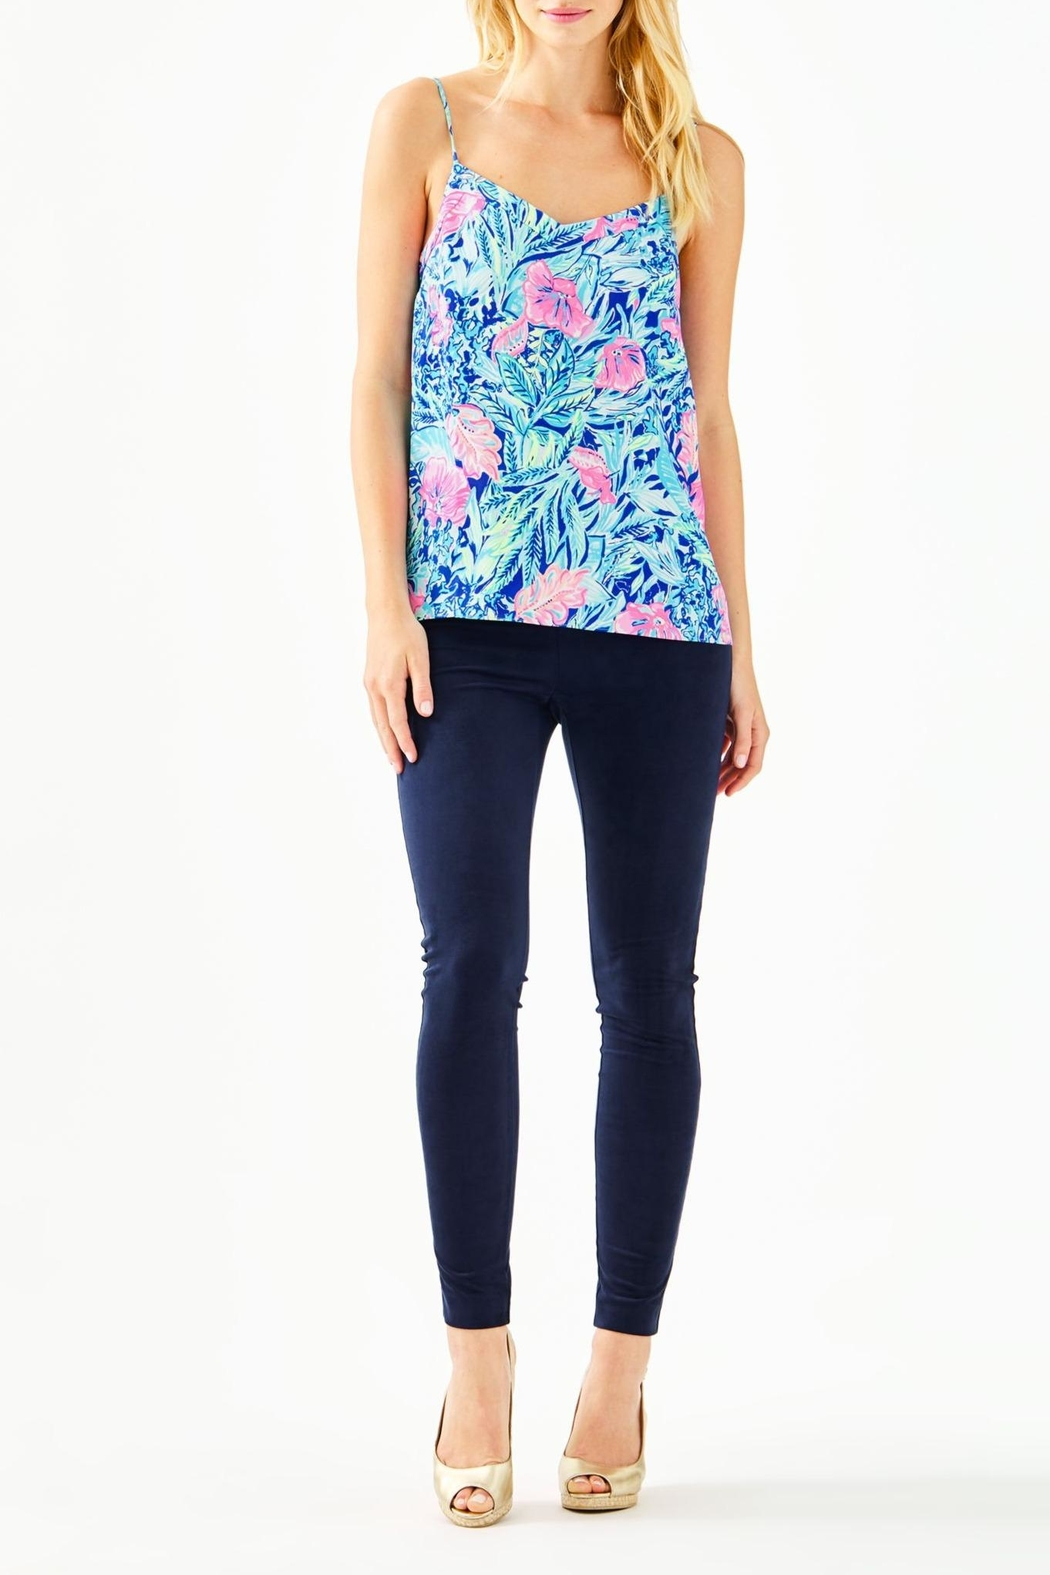 Lilly Pulitzer Margaery Cami - Side Cropped Image